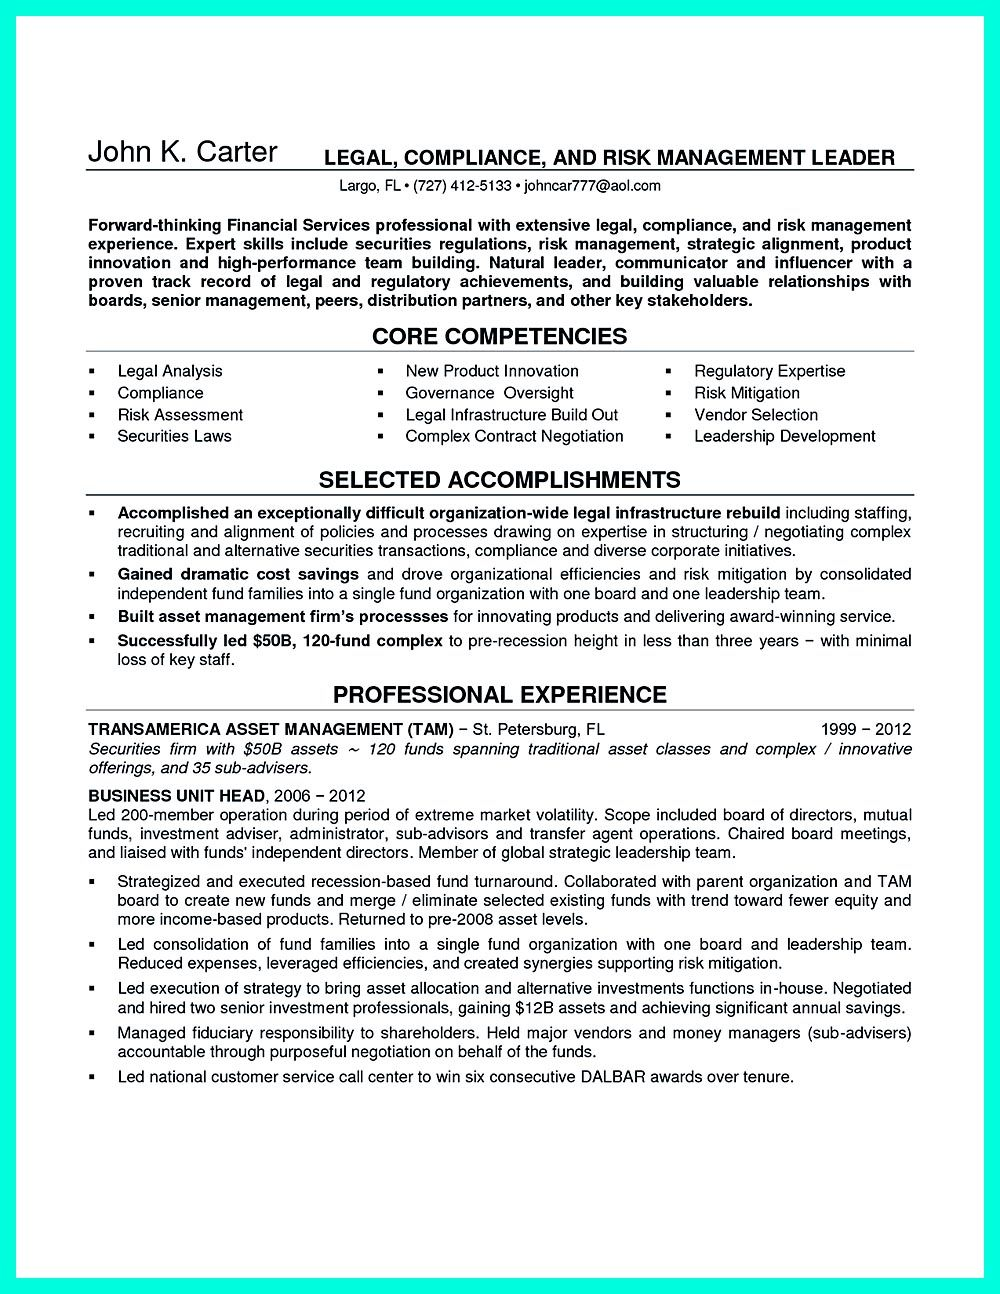 compliance officer resume is well designed to get the attention of compliance officer resume is well designed to get the attention of the hiring manager the